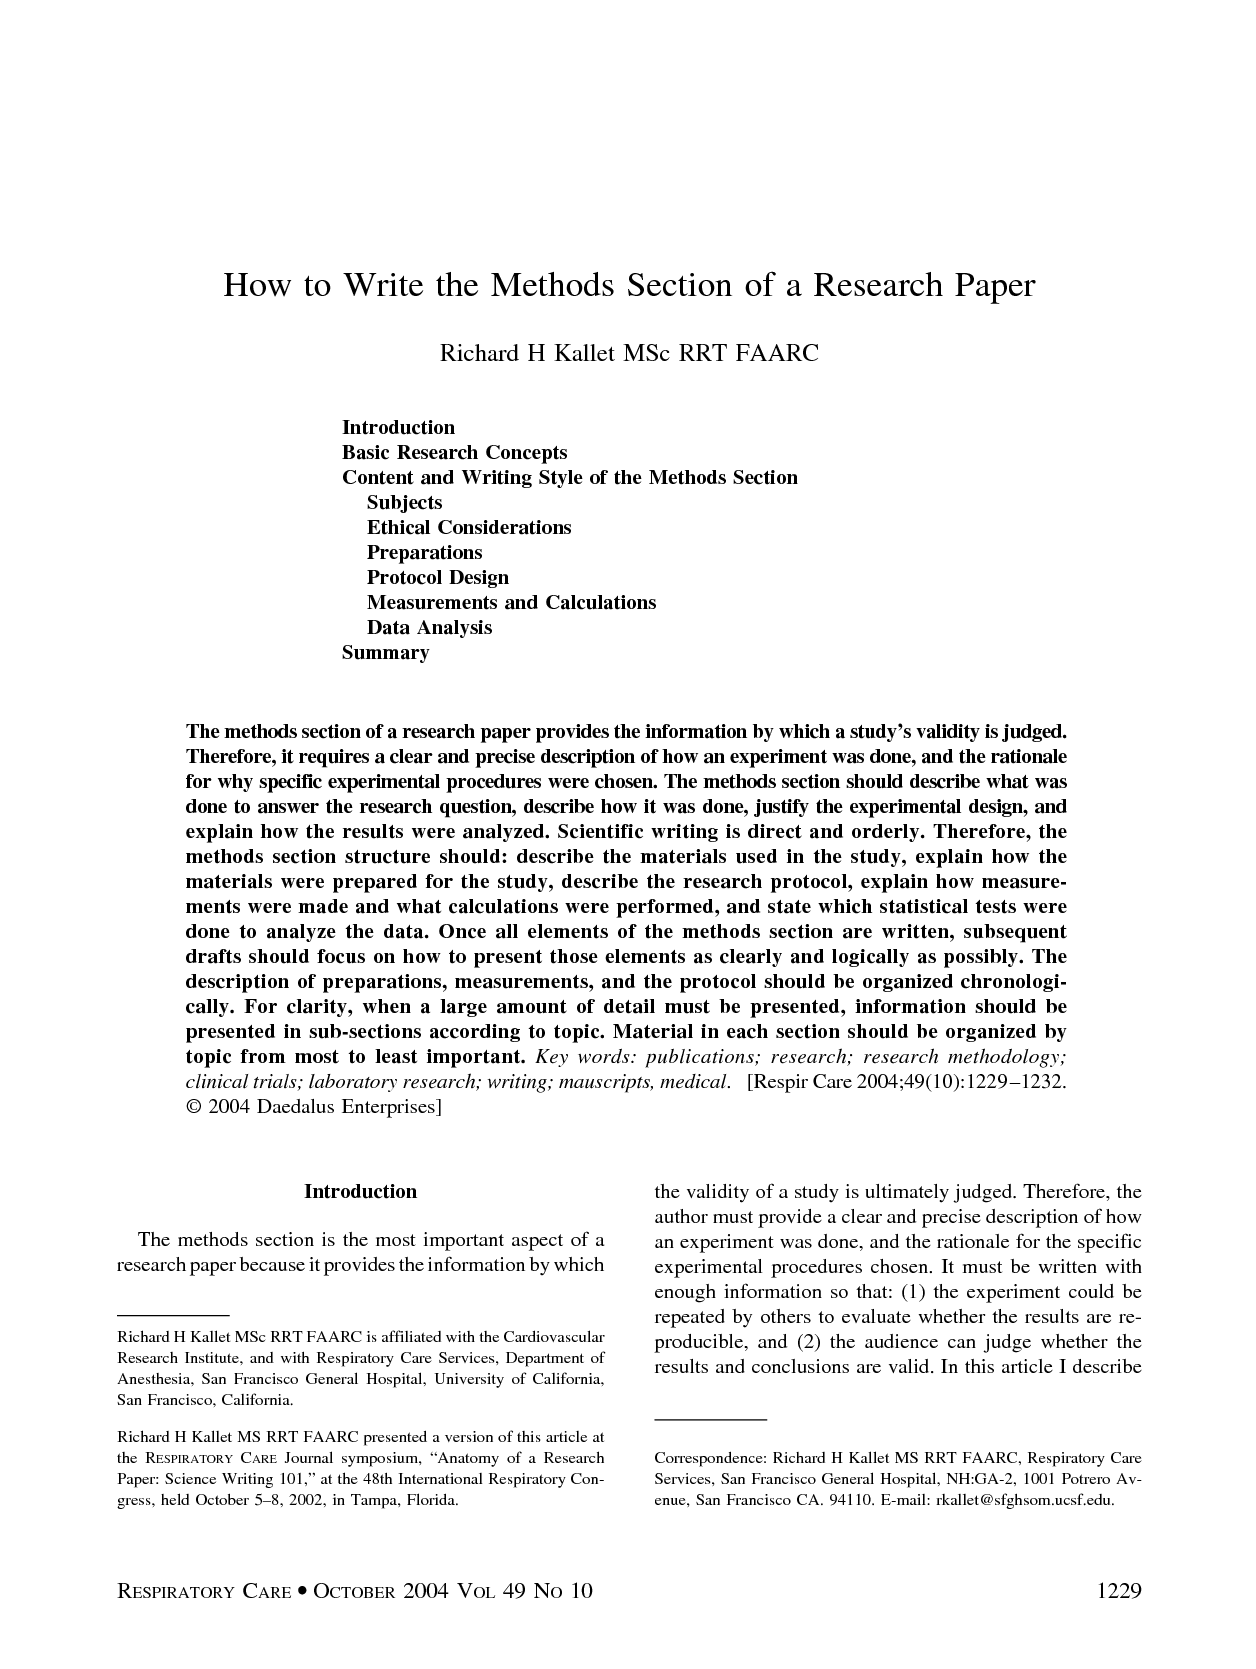 write data analysis section research paper Drawing conclusions and implications data analysis a conclusion section refocuses the purpose of the research.